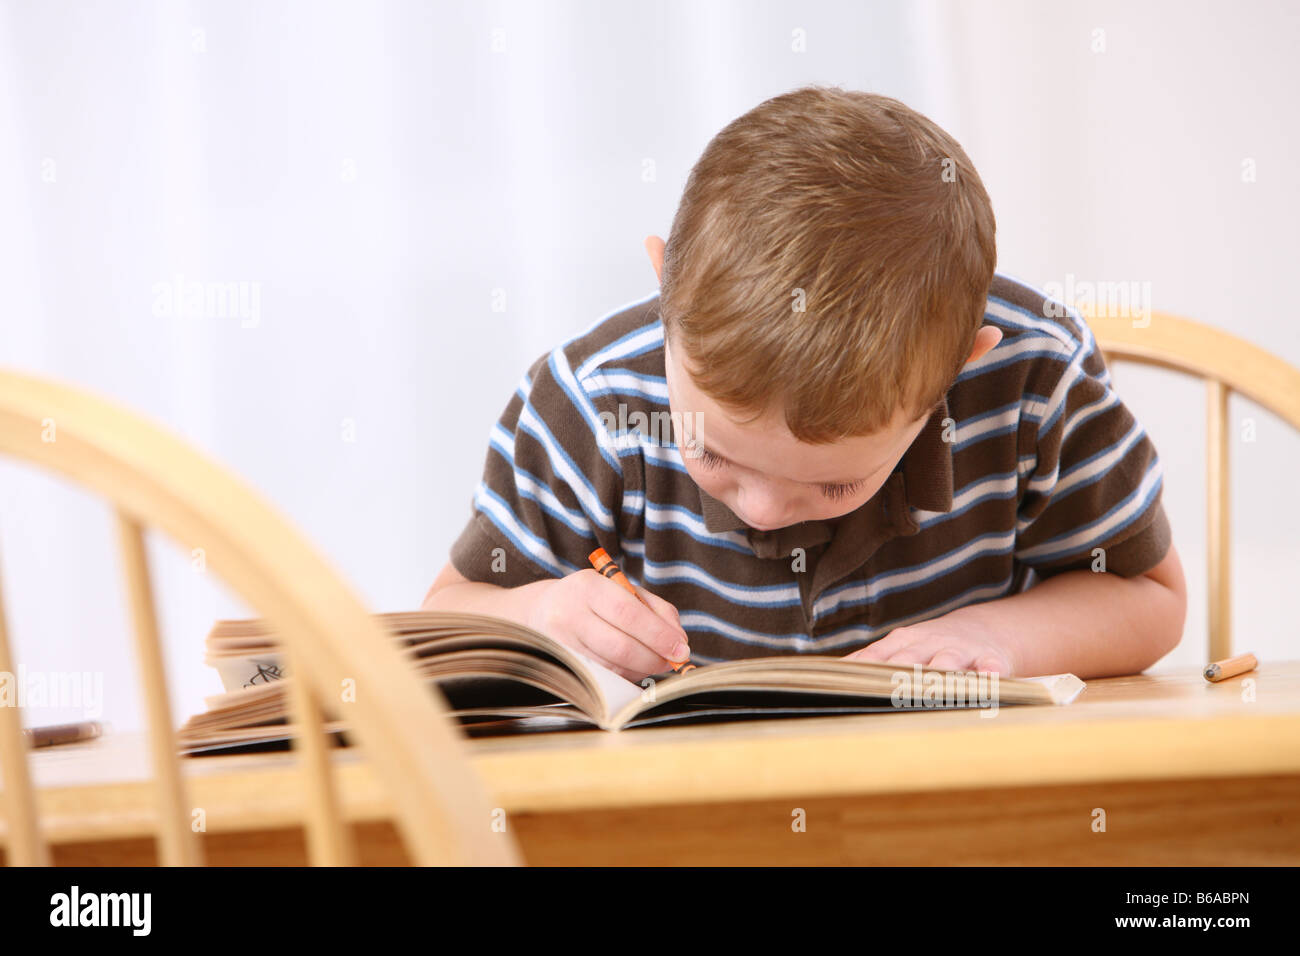 Young Boy Sitting At Table Coloring Book